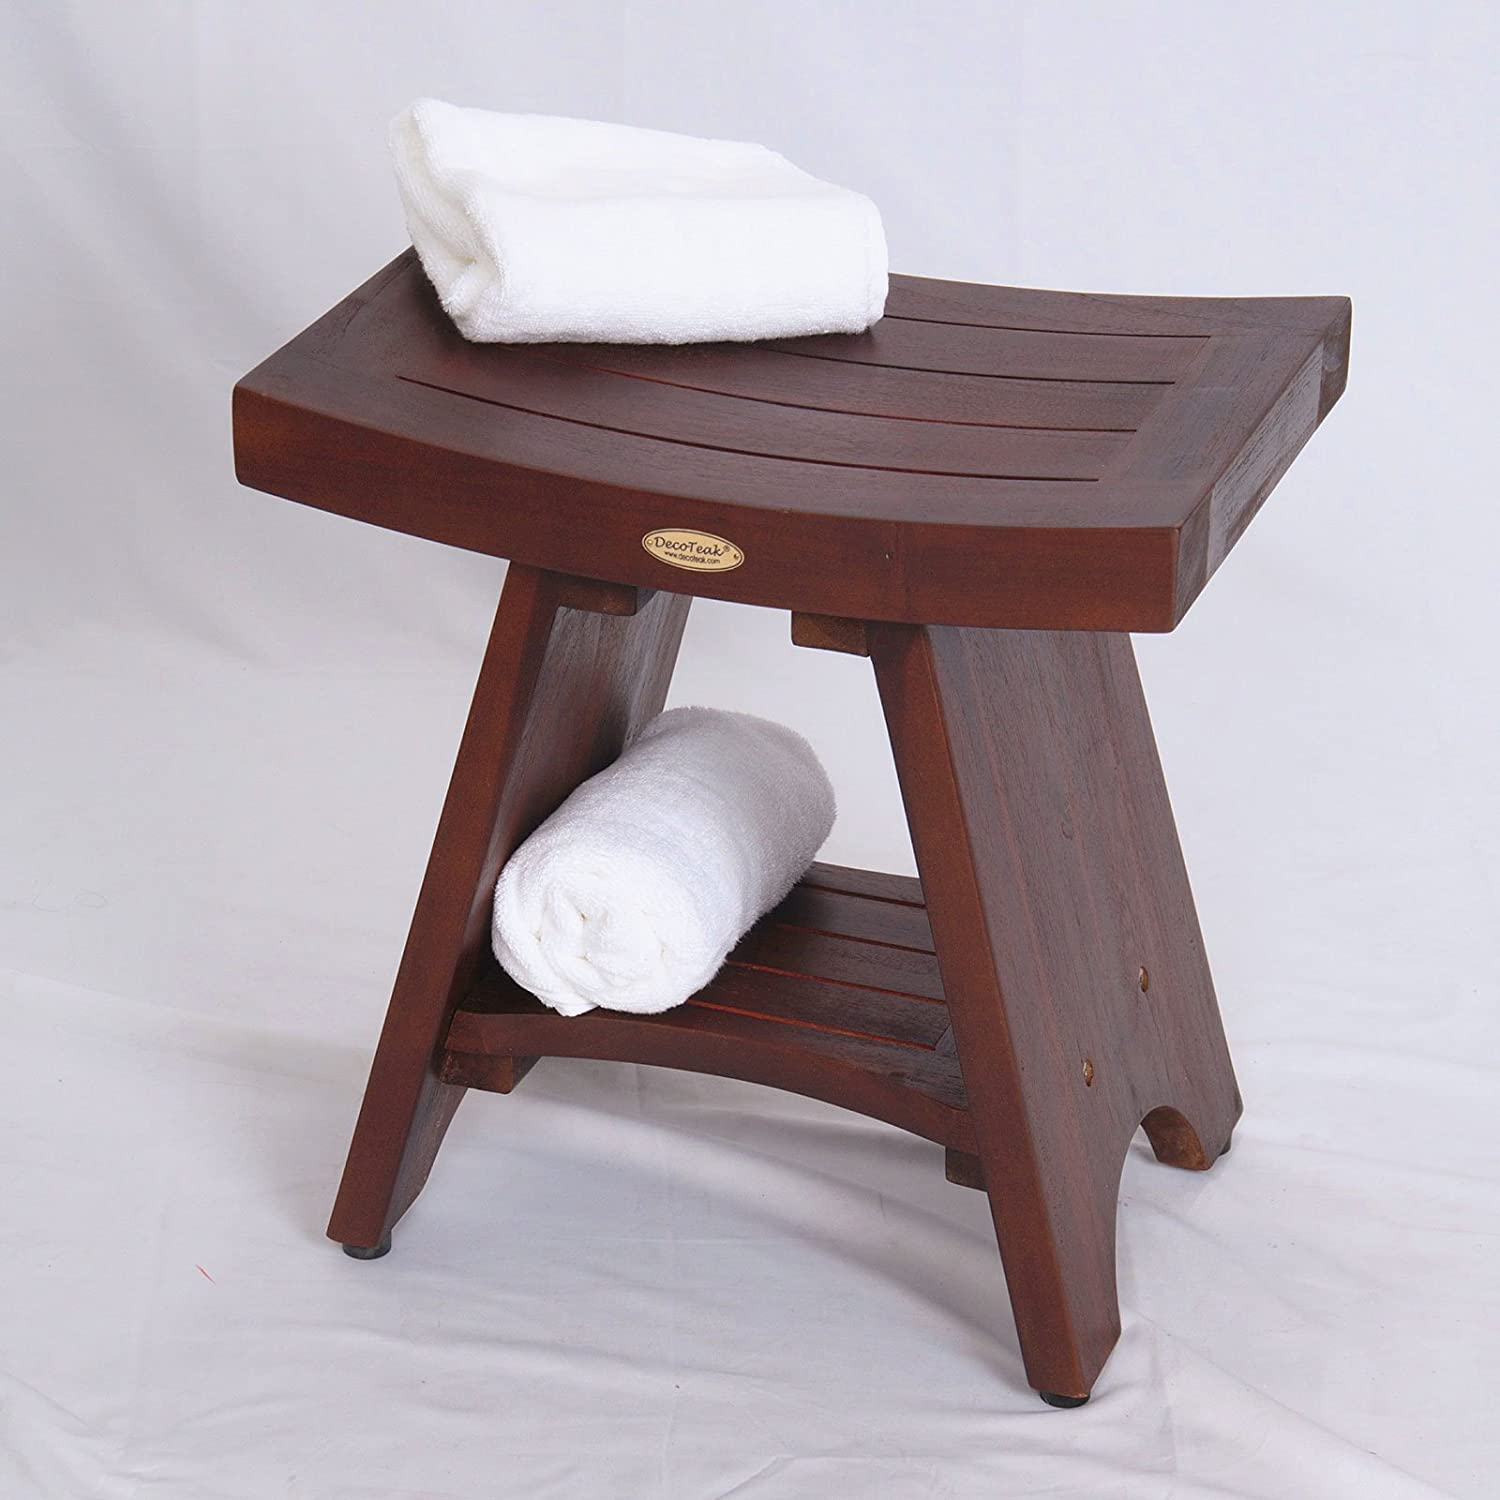 Amazon.com: FULLY ASSEMBLED Serenity Eastern Style Teak Serenity ...